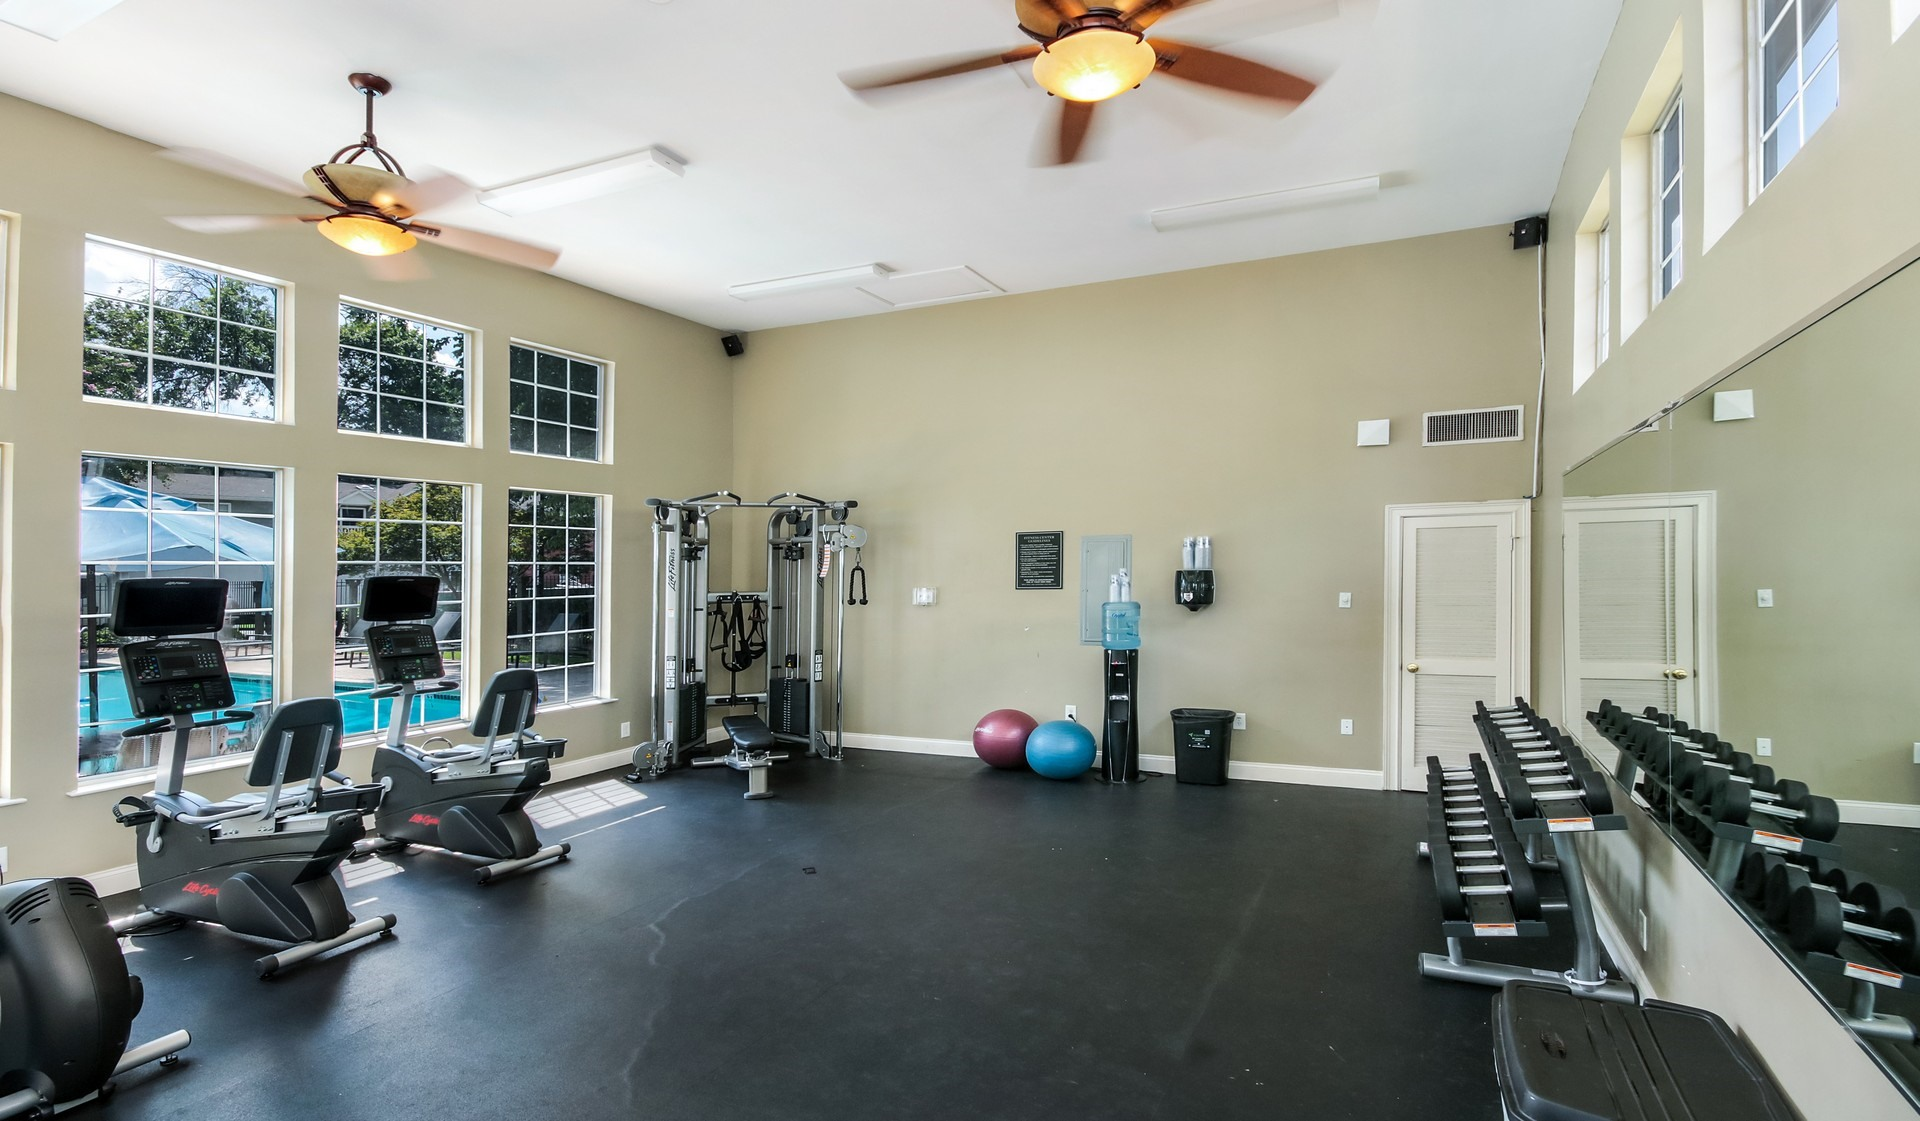 https://www.peachtreeparkapartments.com/content/dam/aimco-properties/039110/1920x1121/amenities/Fitness4.jpg